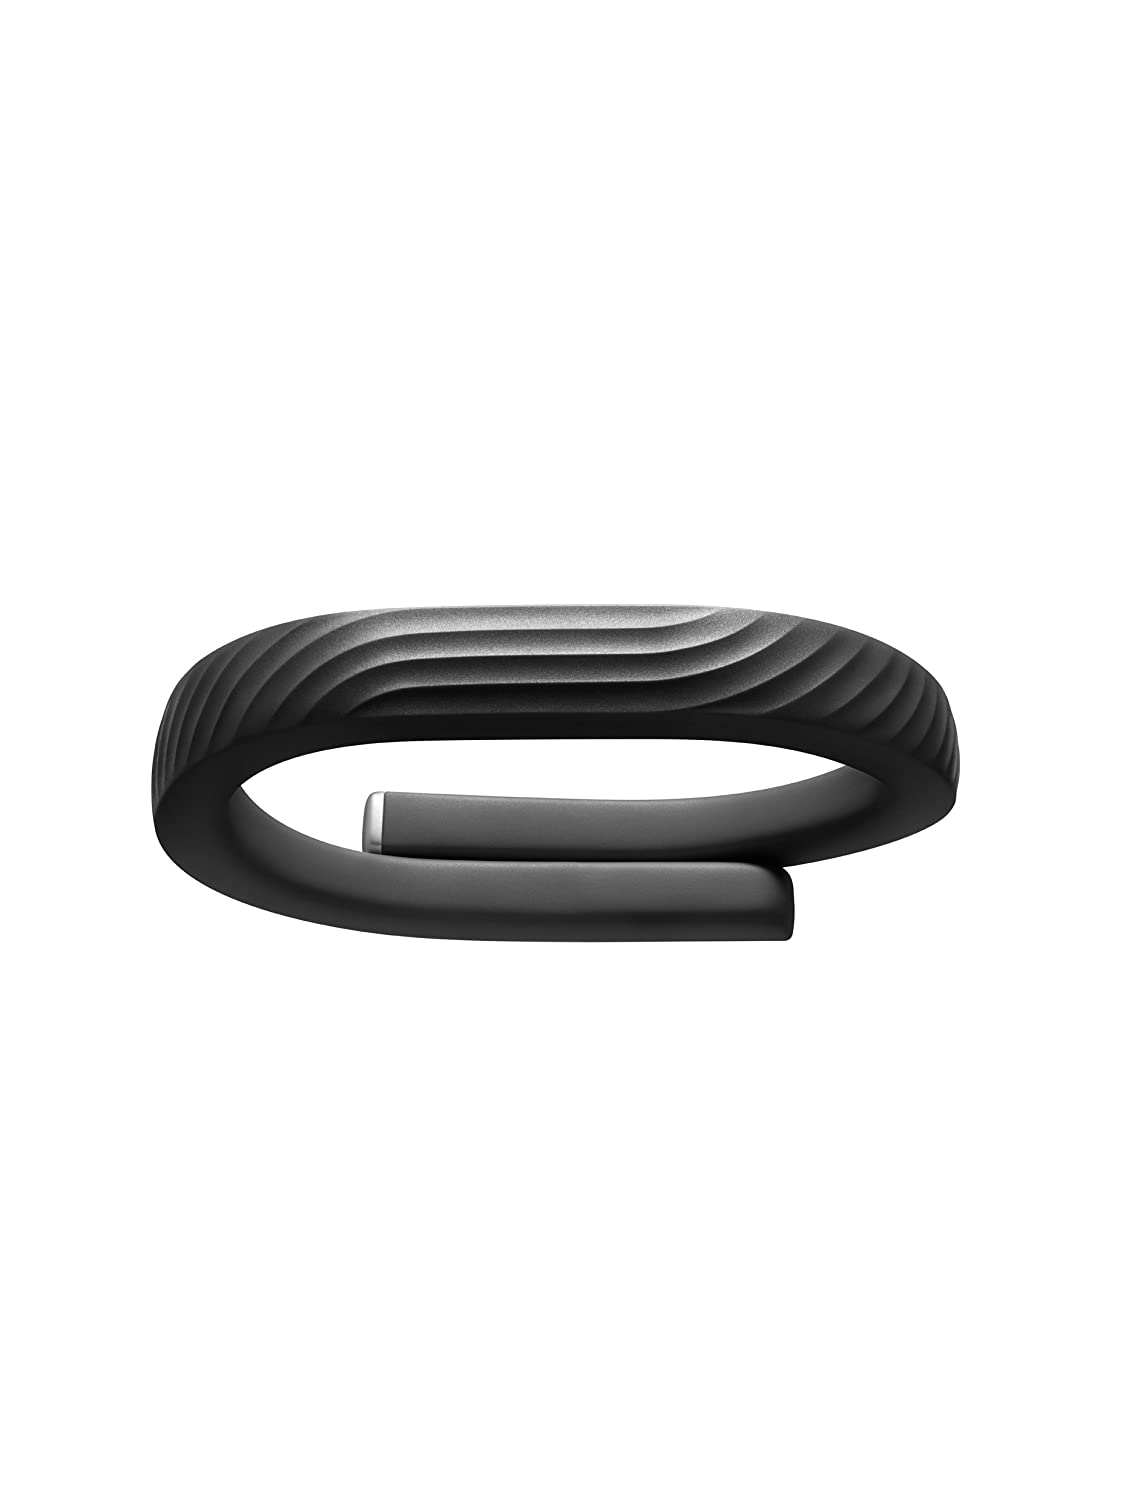 Jawbone Activity Tracker Discontinued Manufacturer Image 2